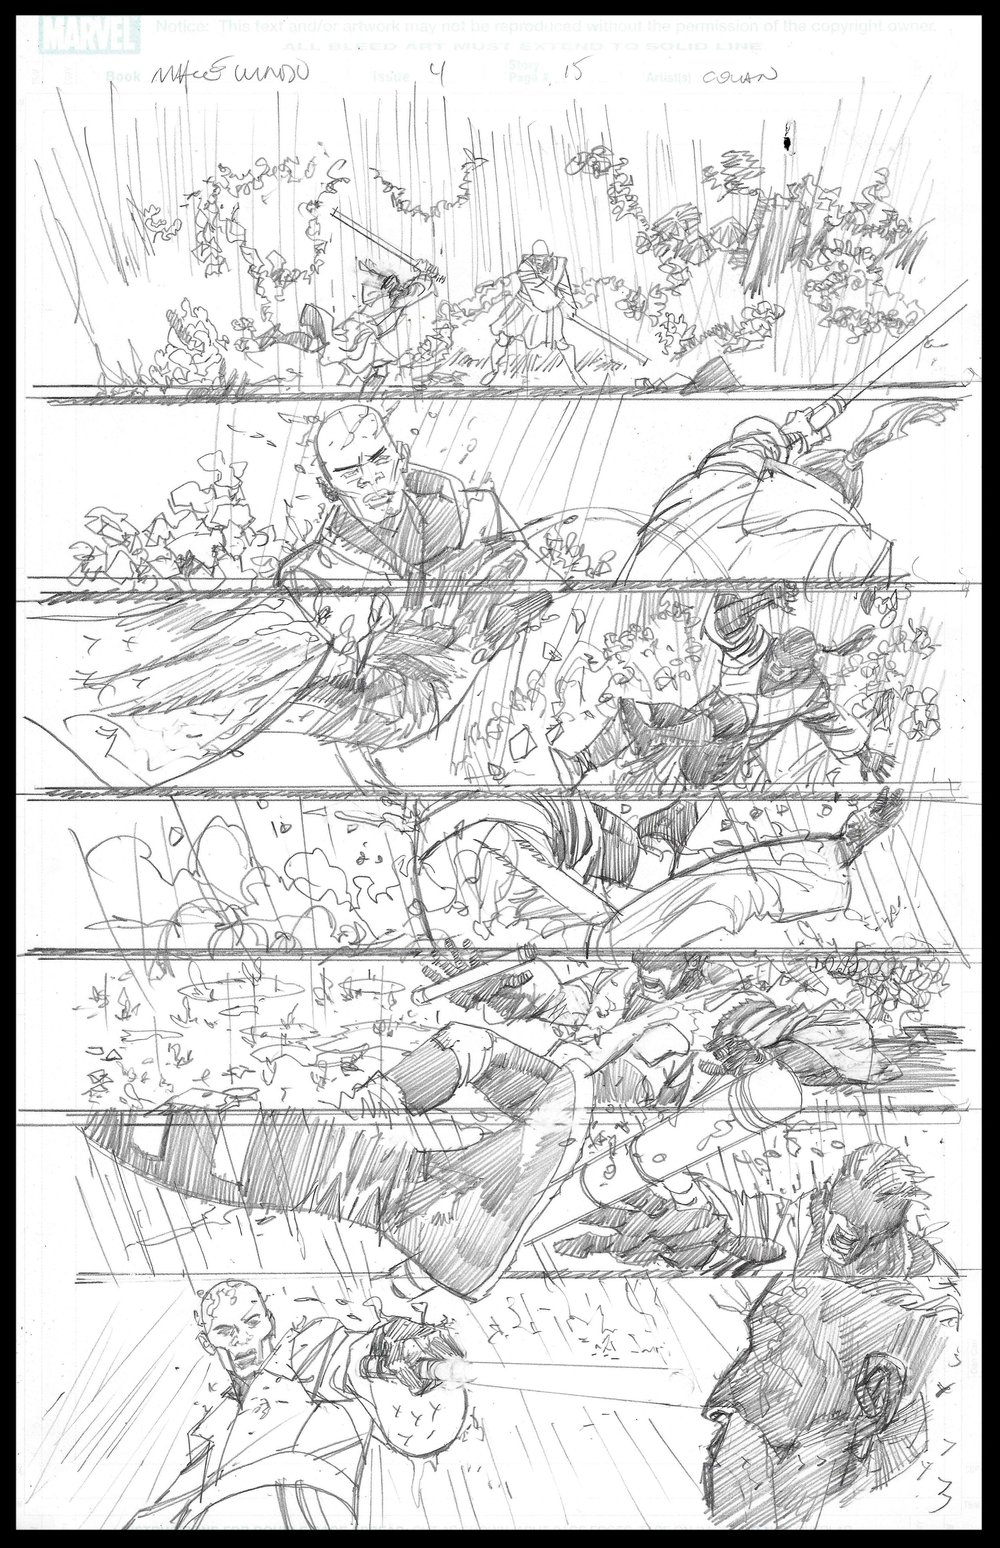 Mace Windu #4 - Page 15 - Pencils